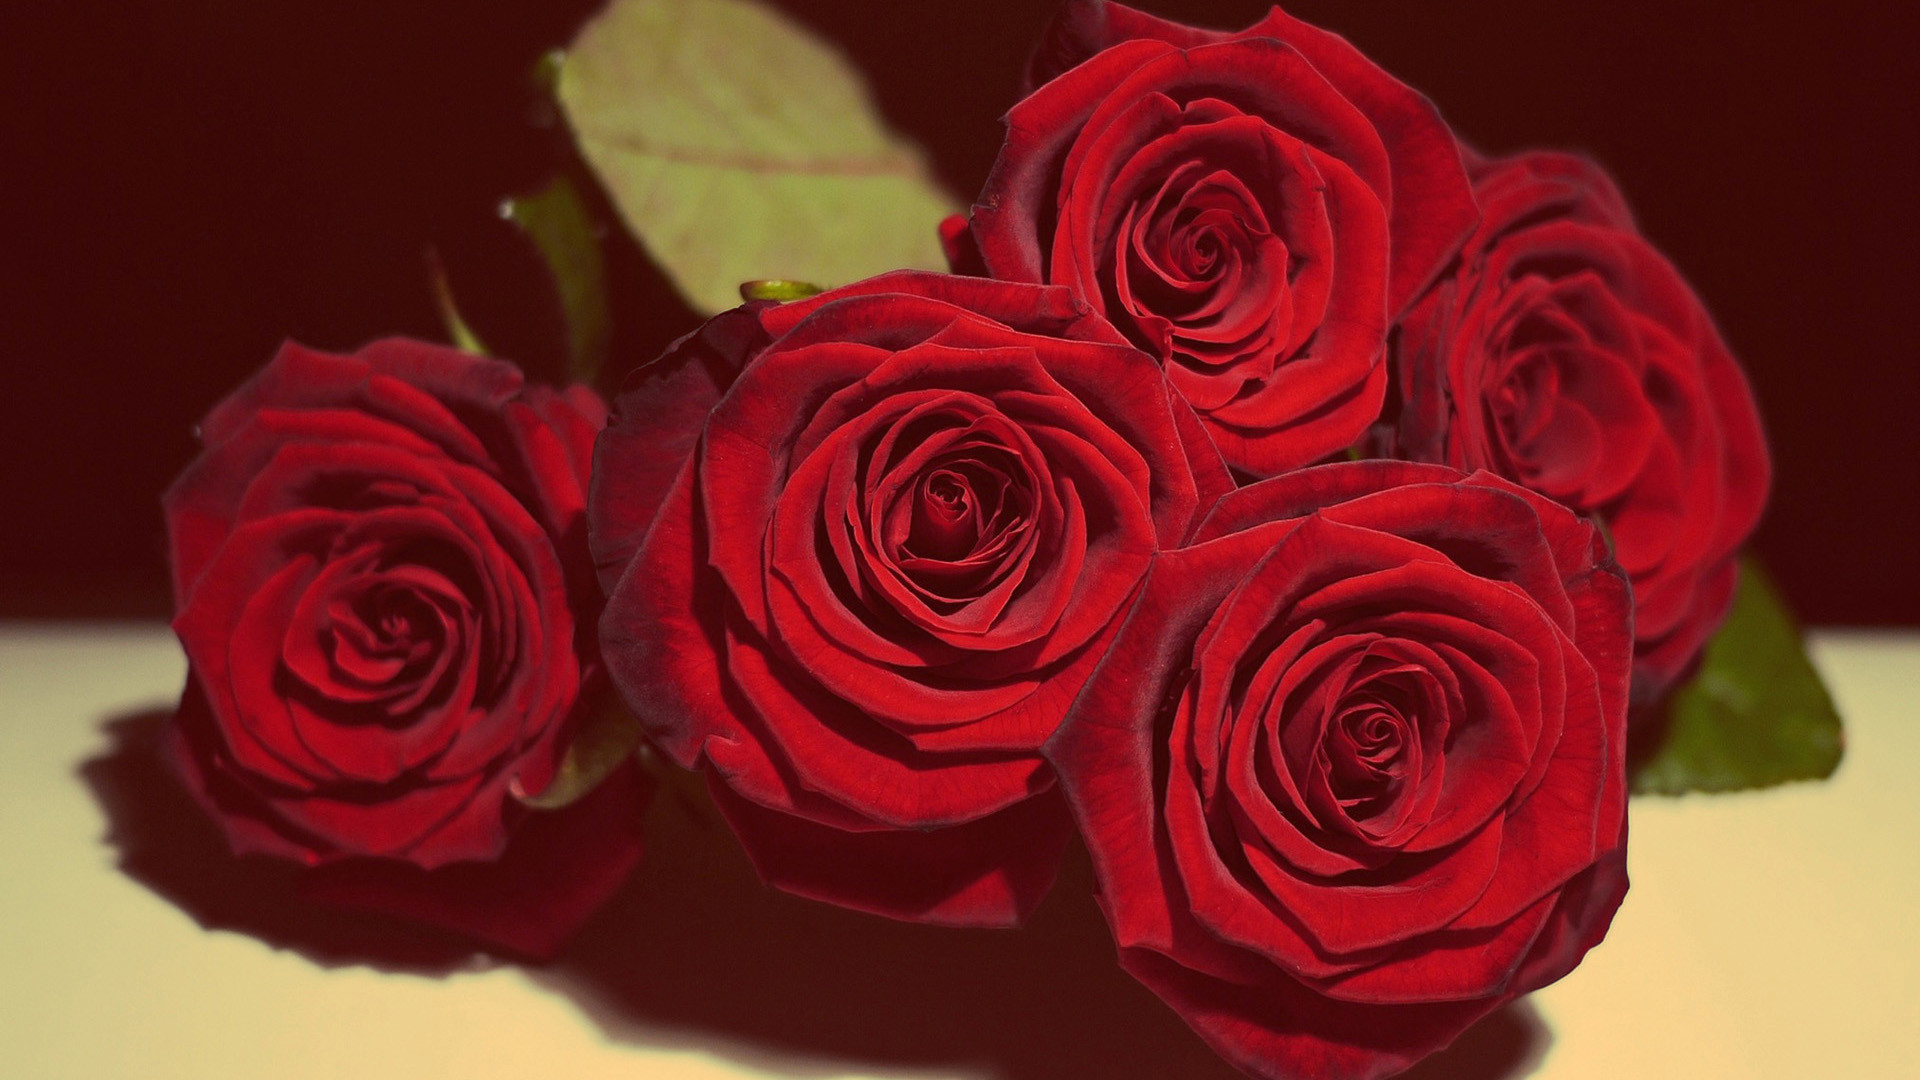 1920x1080, Live Red Roses Wallpapers Red Roses Wallpapers - Romantic Rose Red - HD Wallpaper